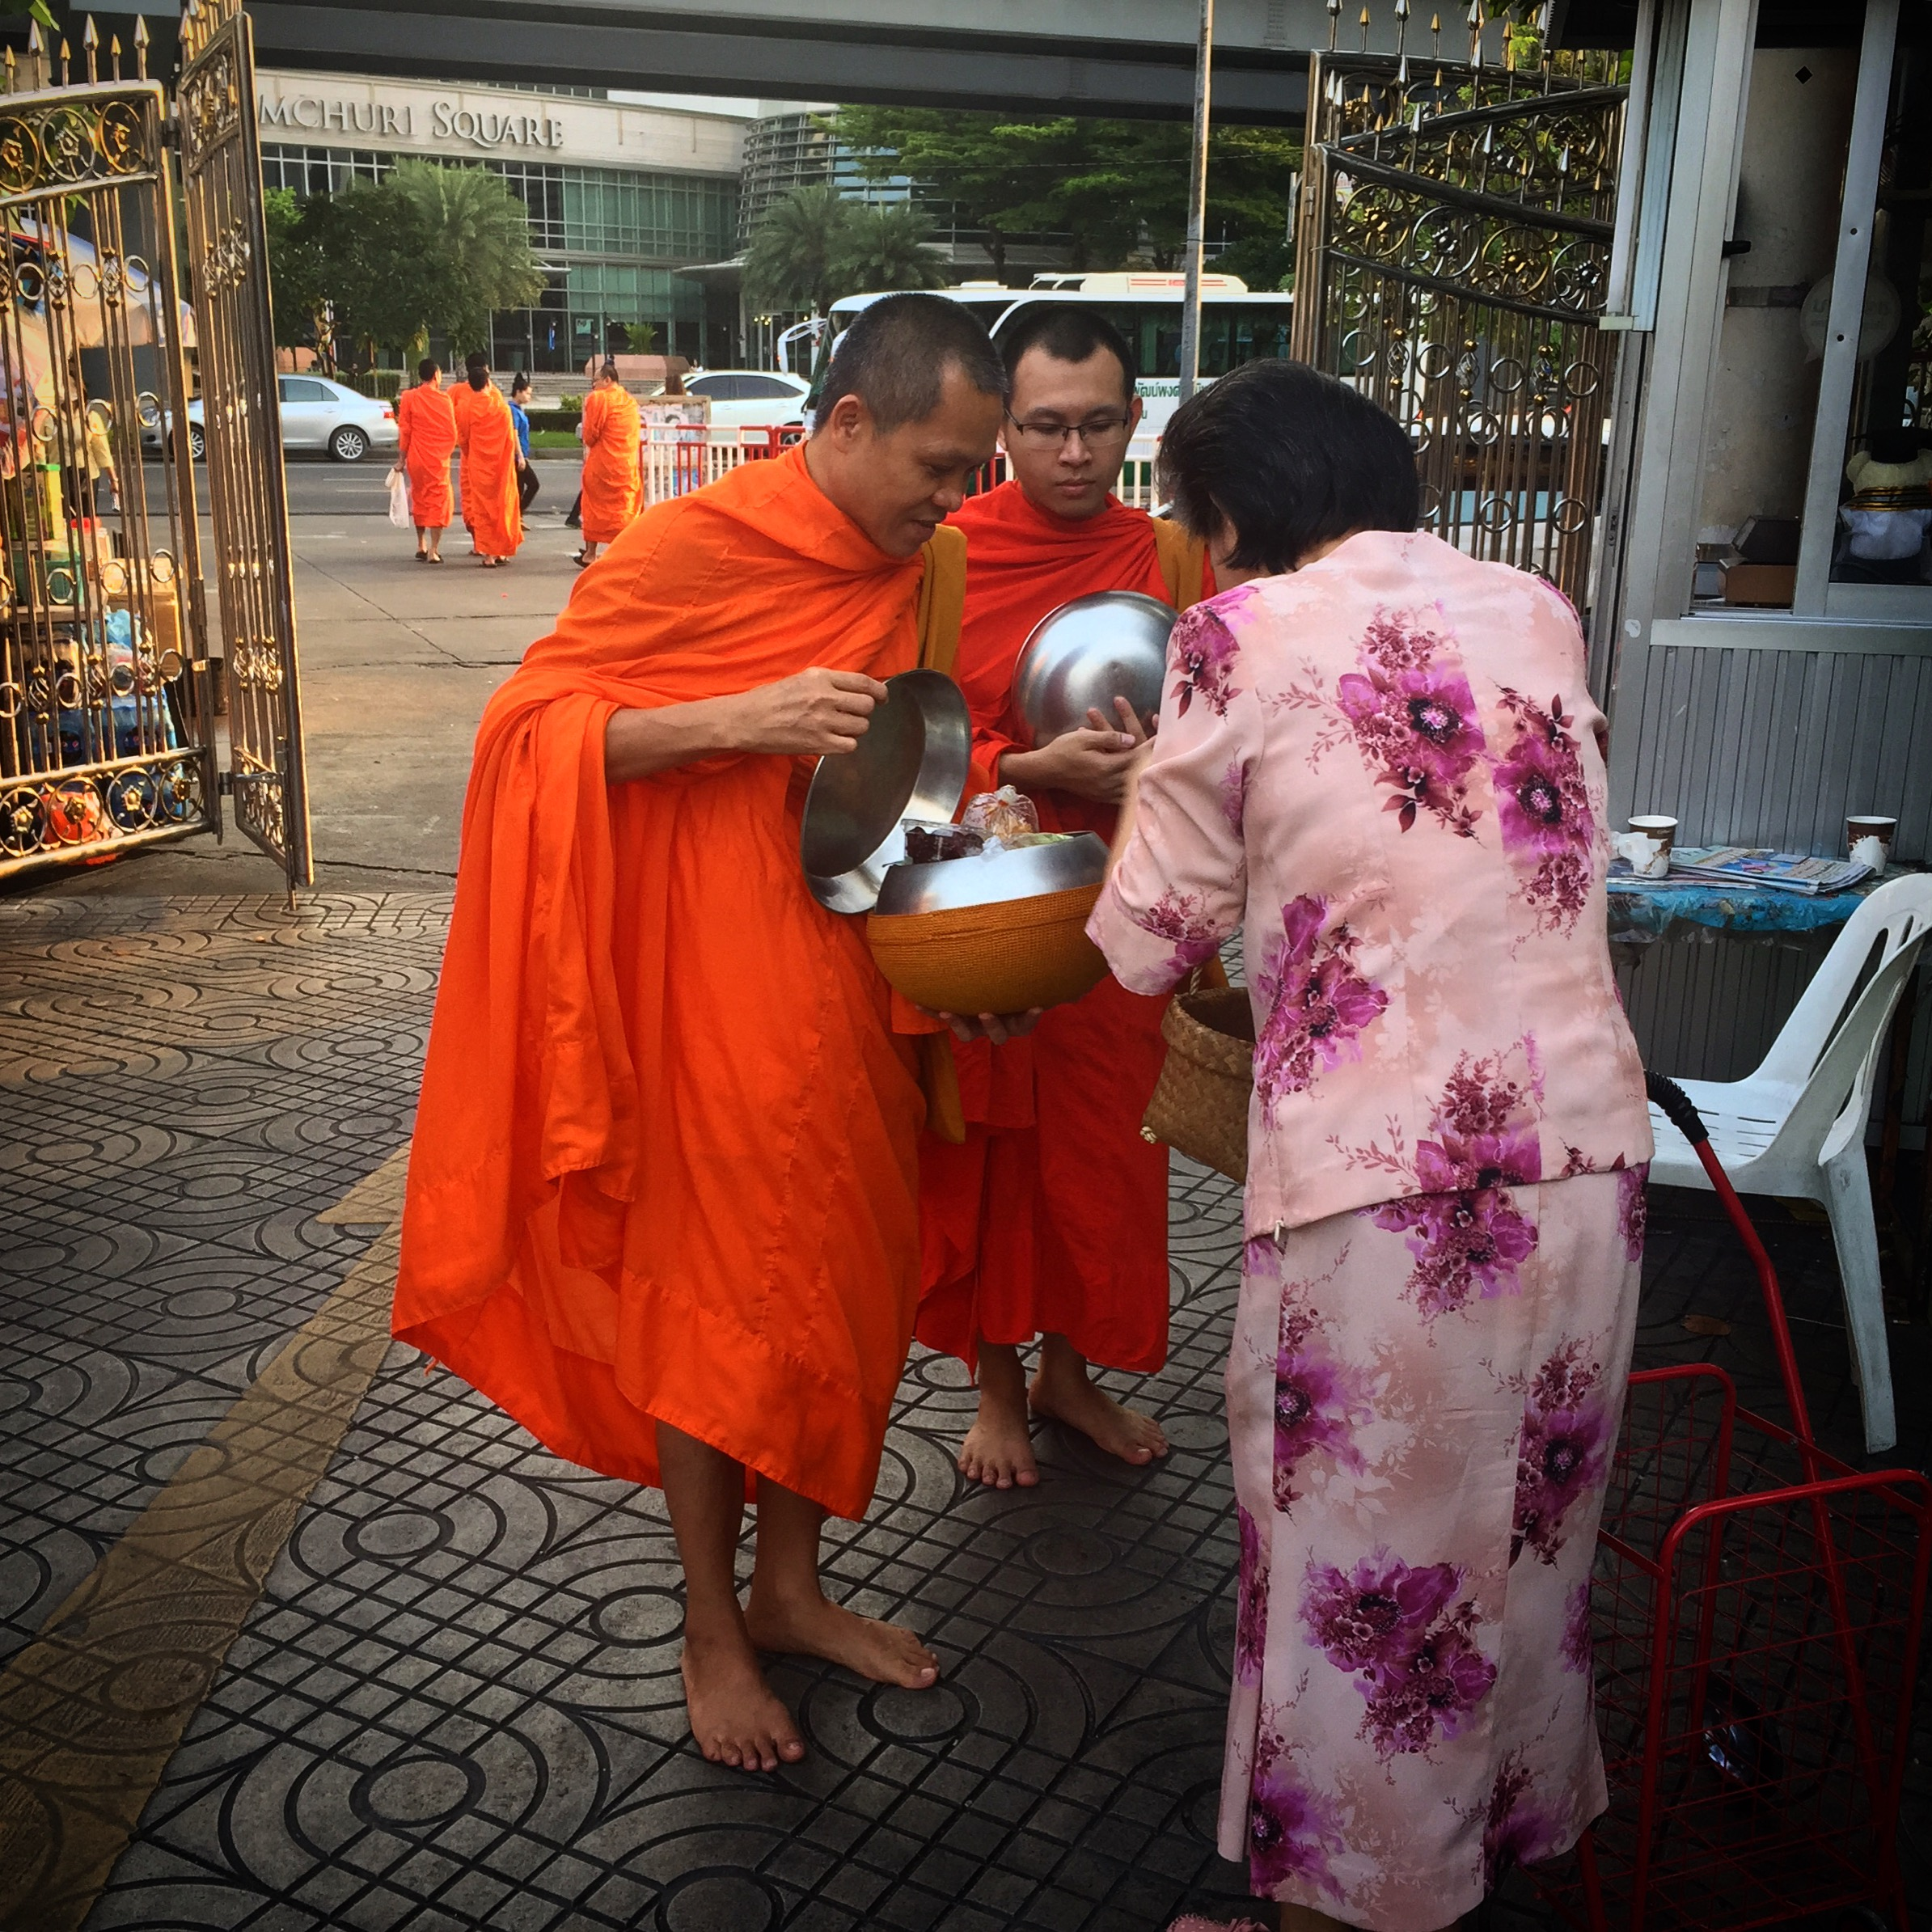 At dawn, bare footed monks leave the temple carrying their alms bowls